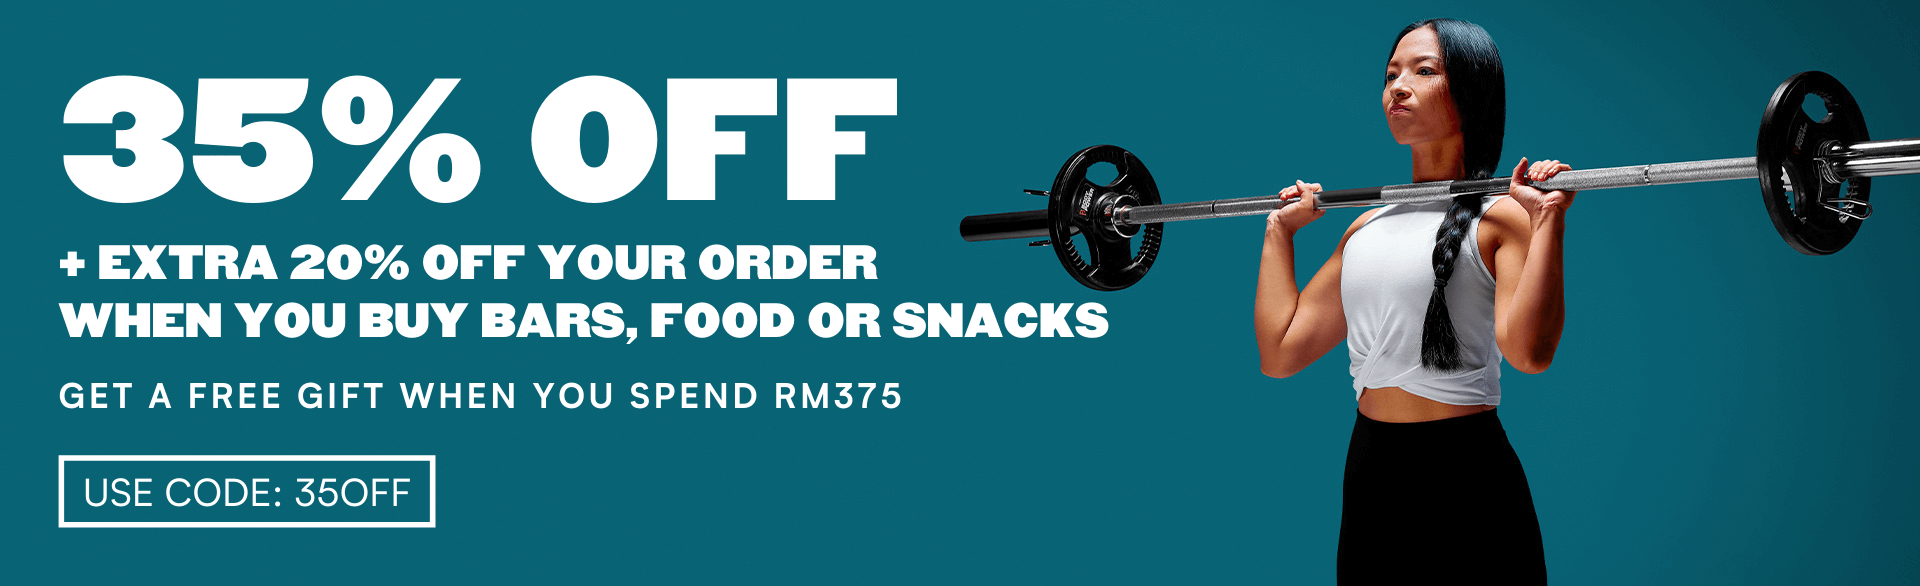 use code: 35off for 35% off plus get extra 20% off when you buy bars, food and snacks